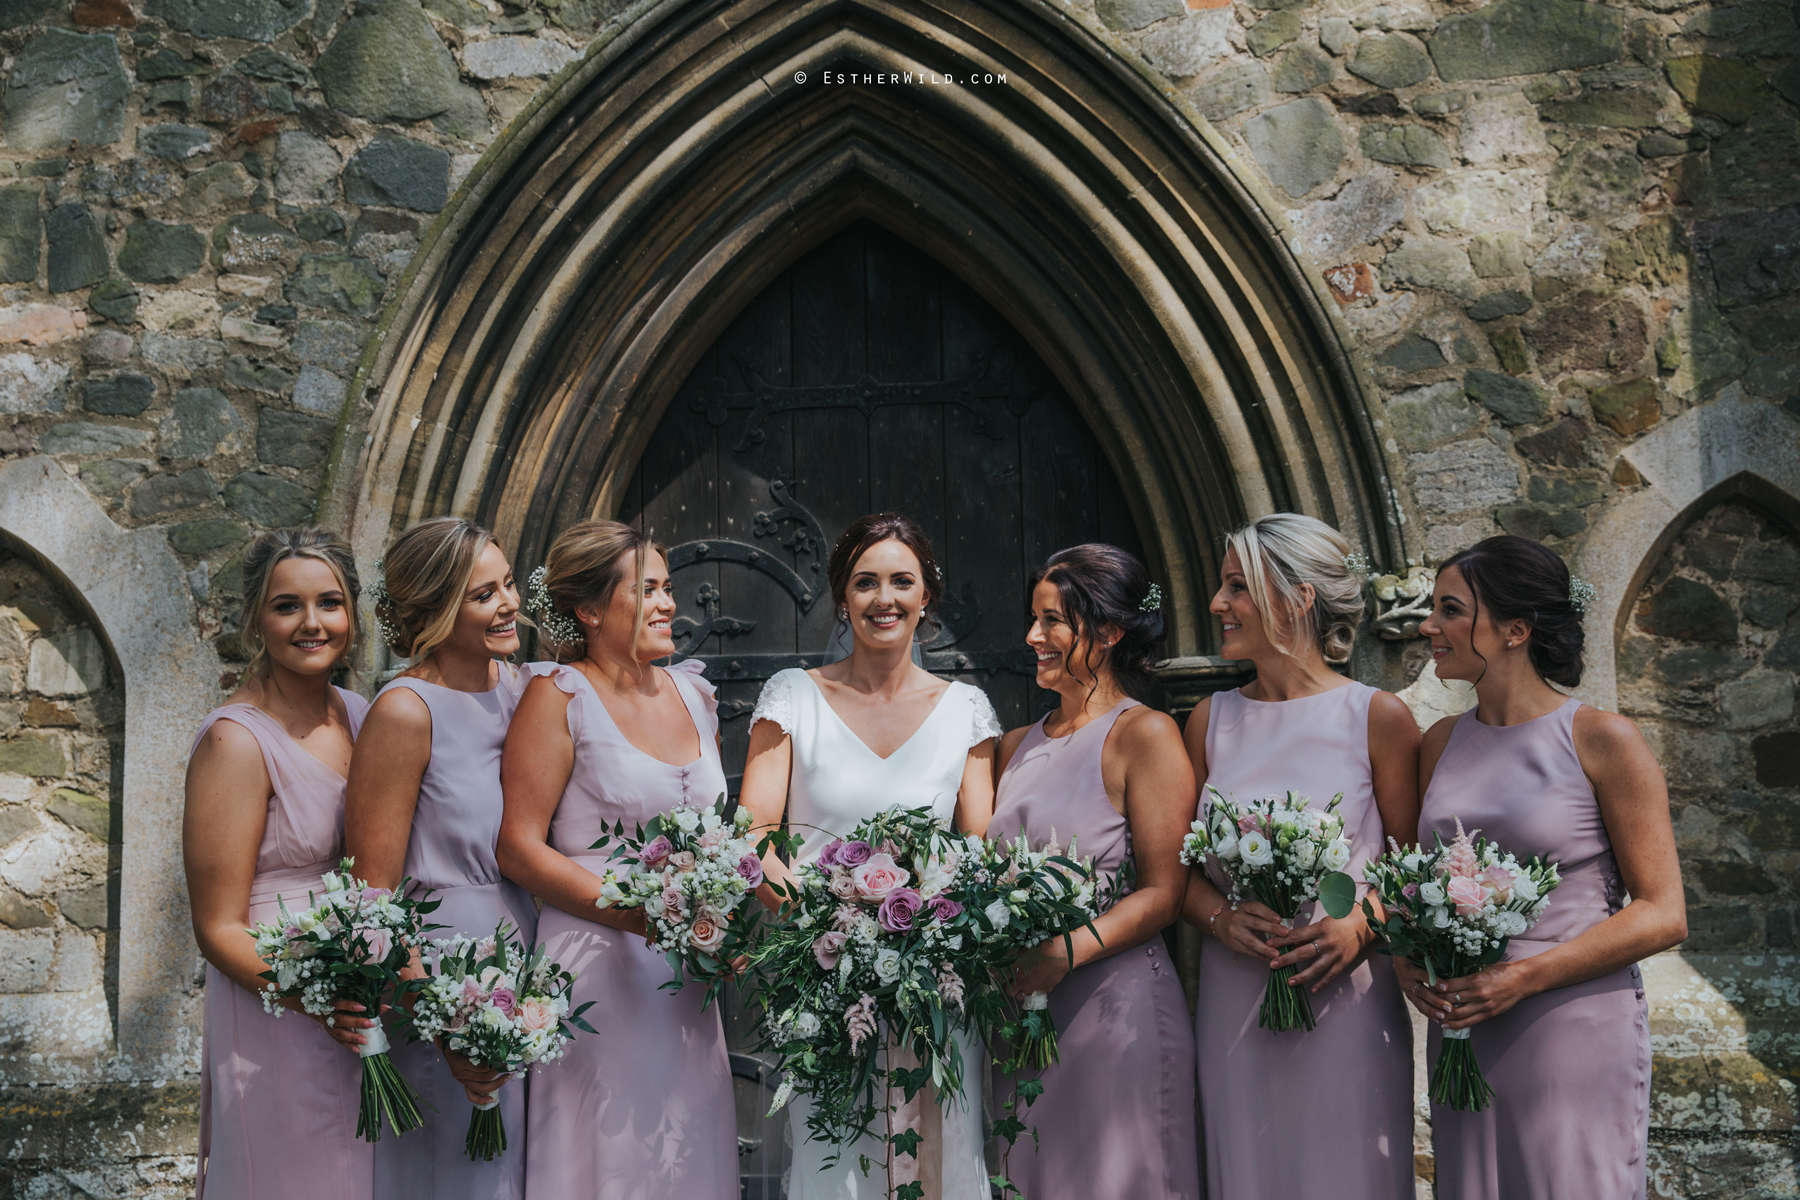 Wootton_Wedding_Copyright_Esther_Wild_Photographer_IMG_1321.jpg